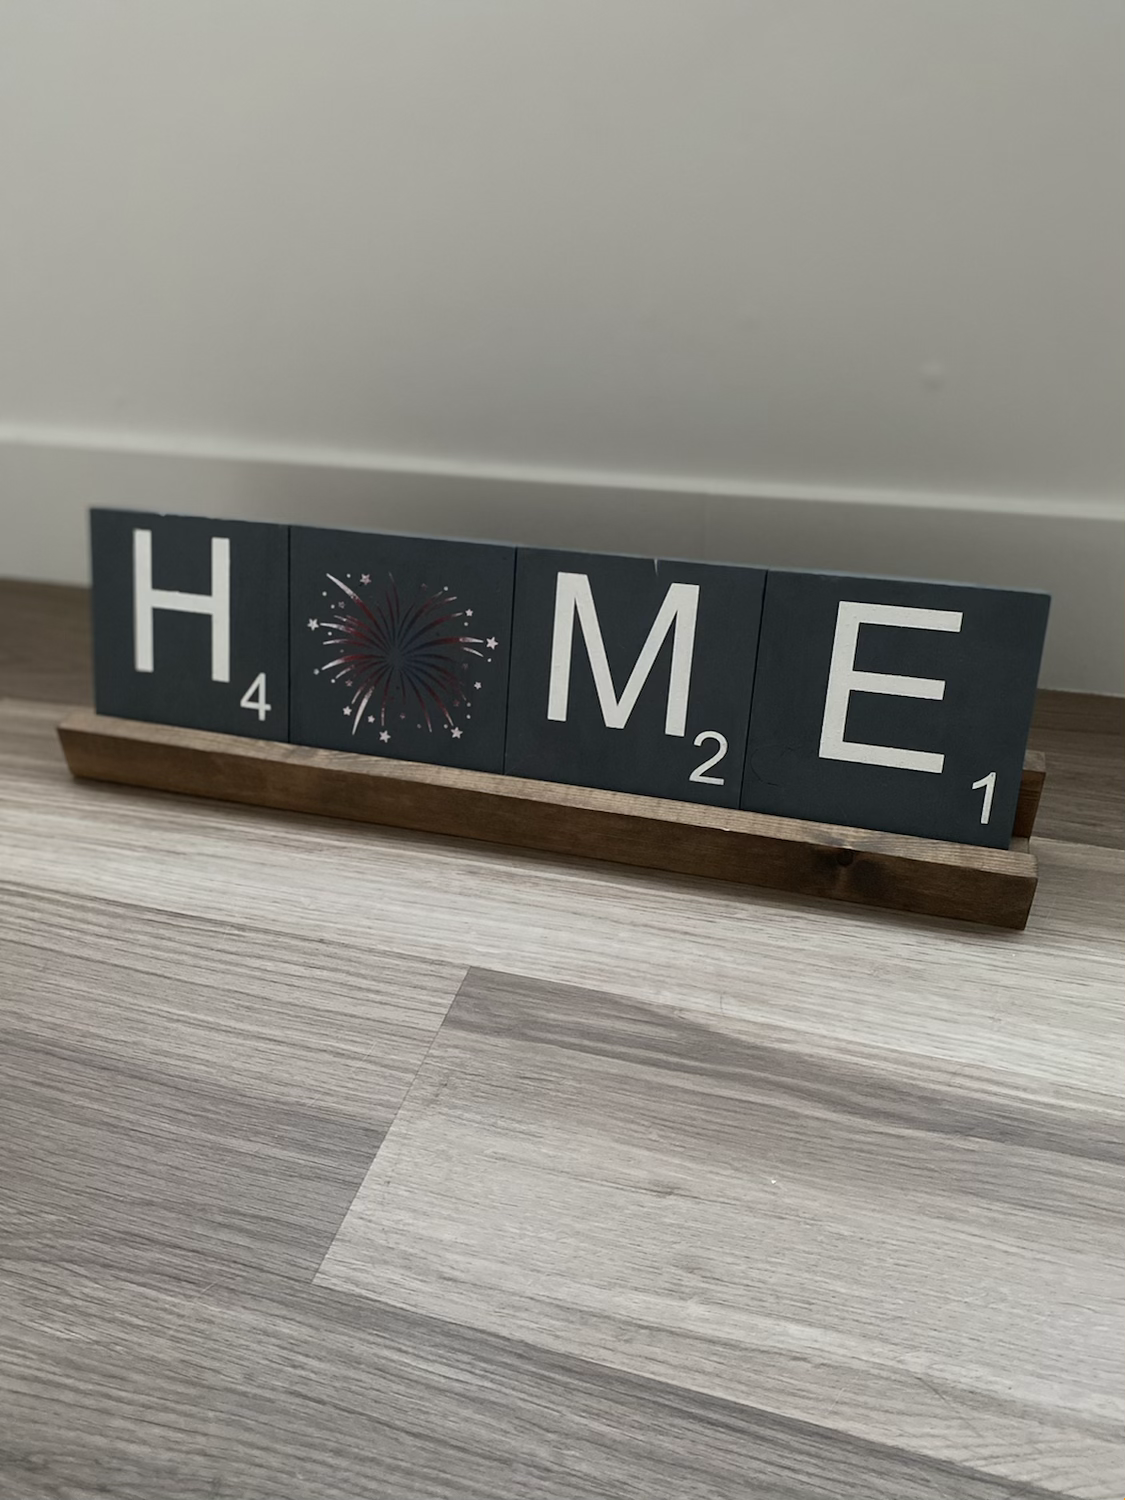 Home tiles and stand